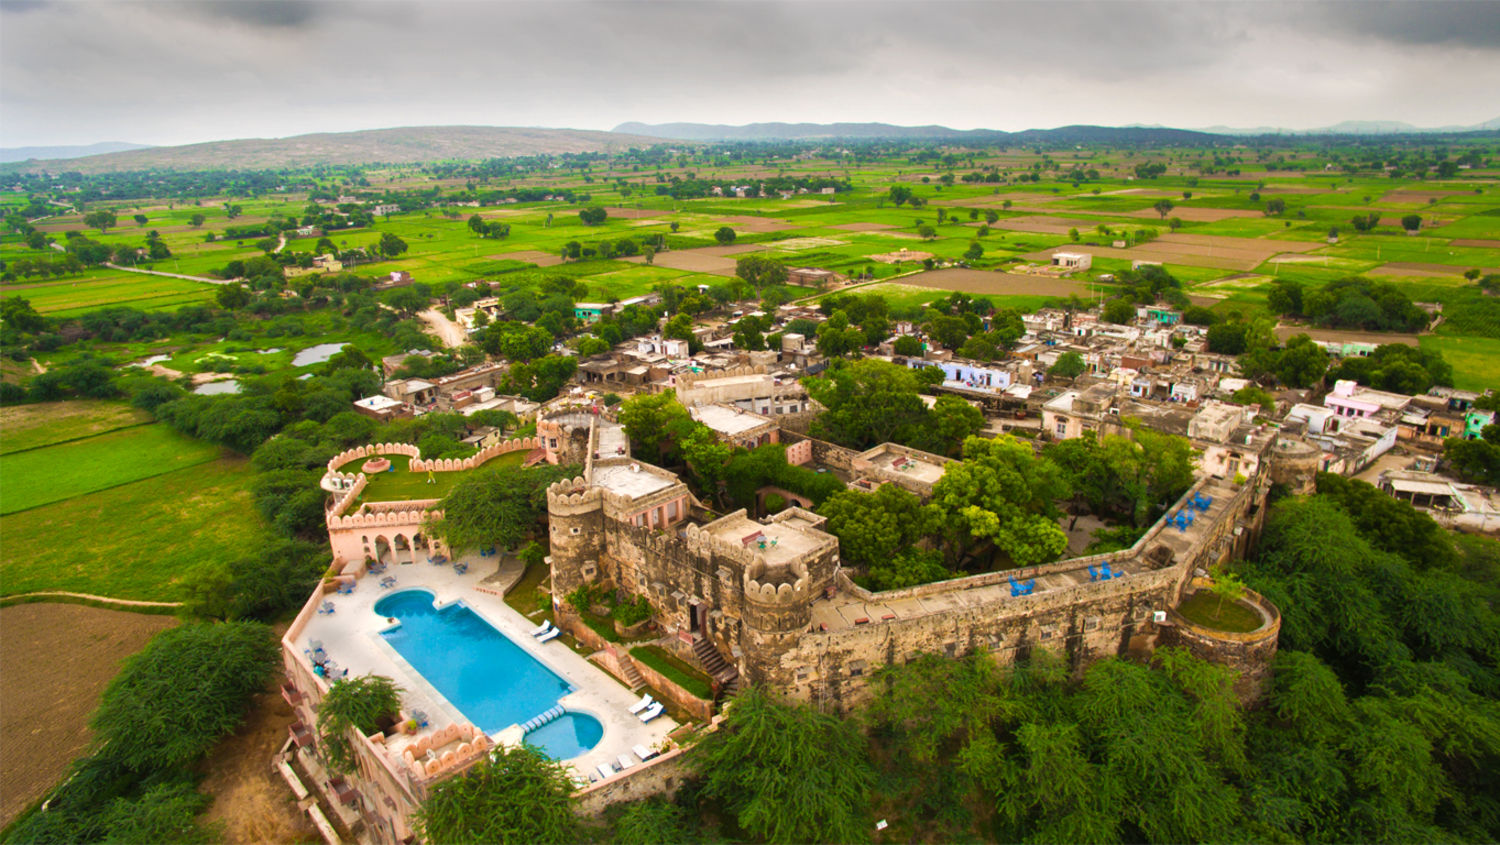 Hill Fort-Kesroli - 14th C, Alwar Kesroli Hill Fort-Kesroli Resort in Alwar Resort in Rajasthan